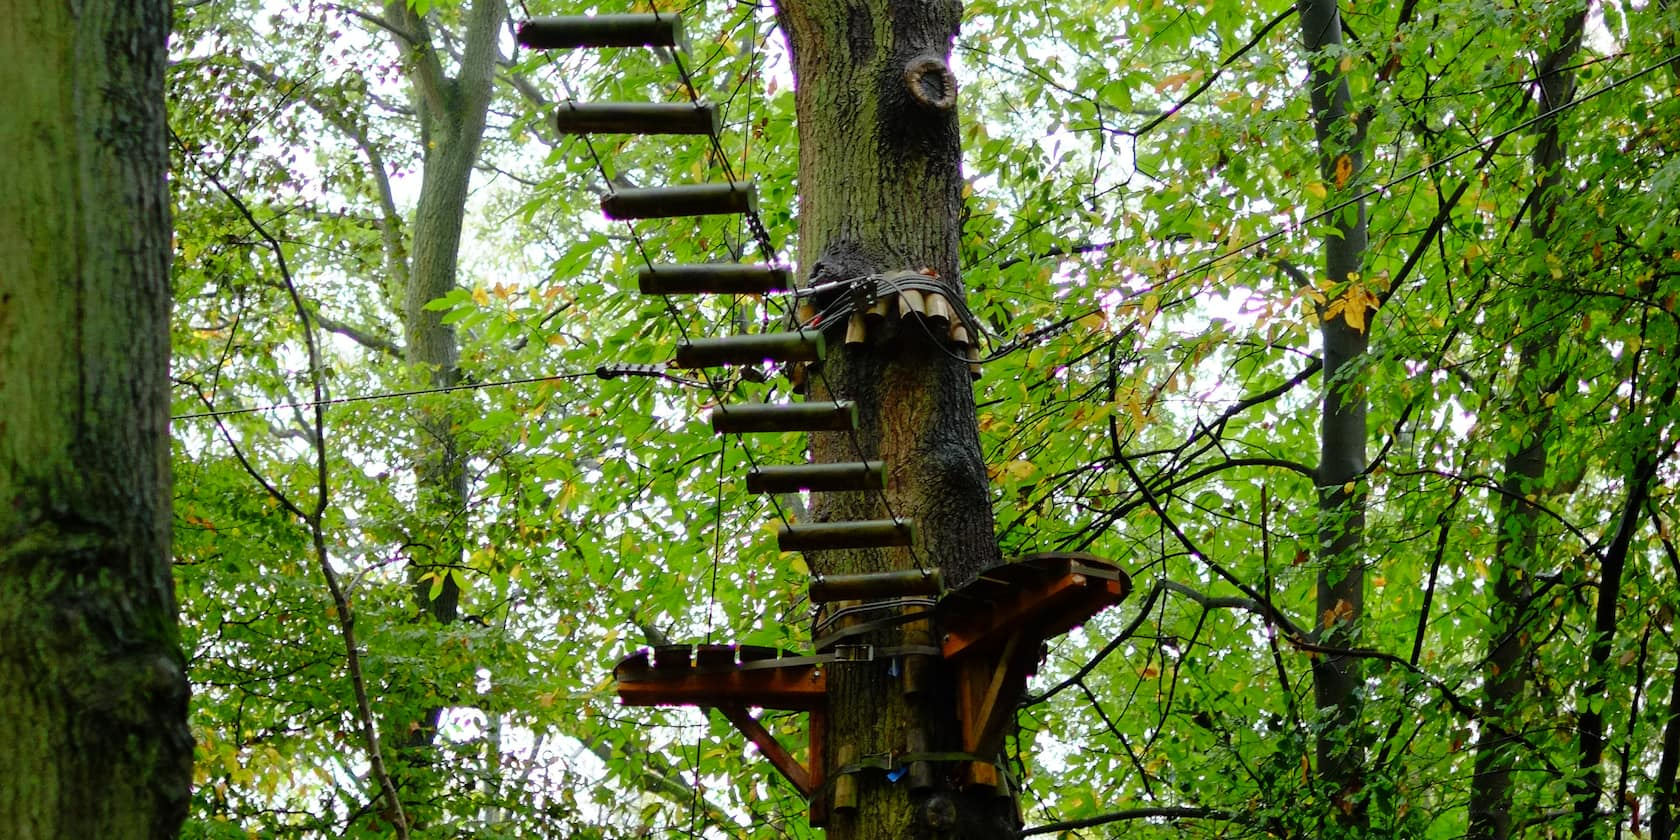 A ropes course bridge high in the tree tops of a tree climbing park in Rouen, France